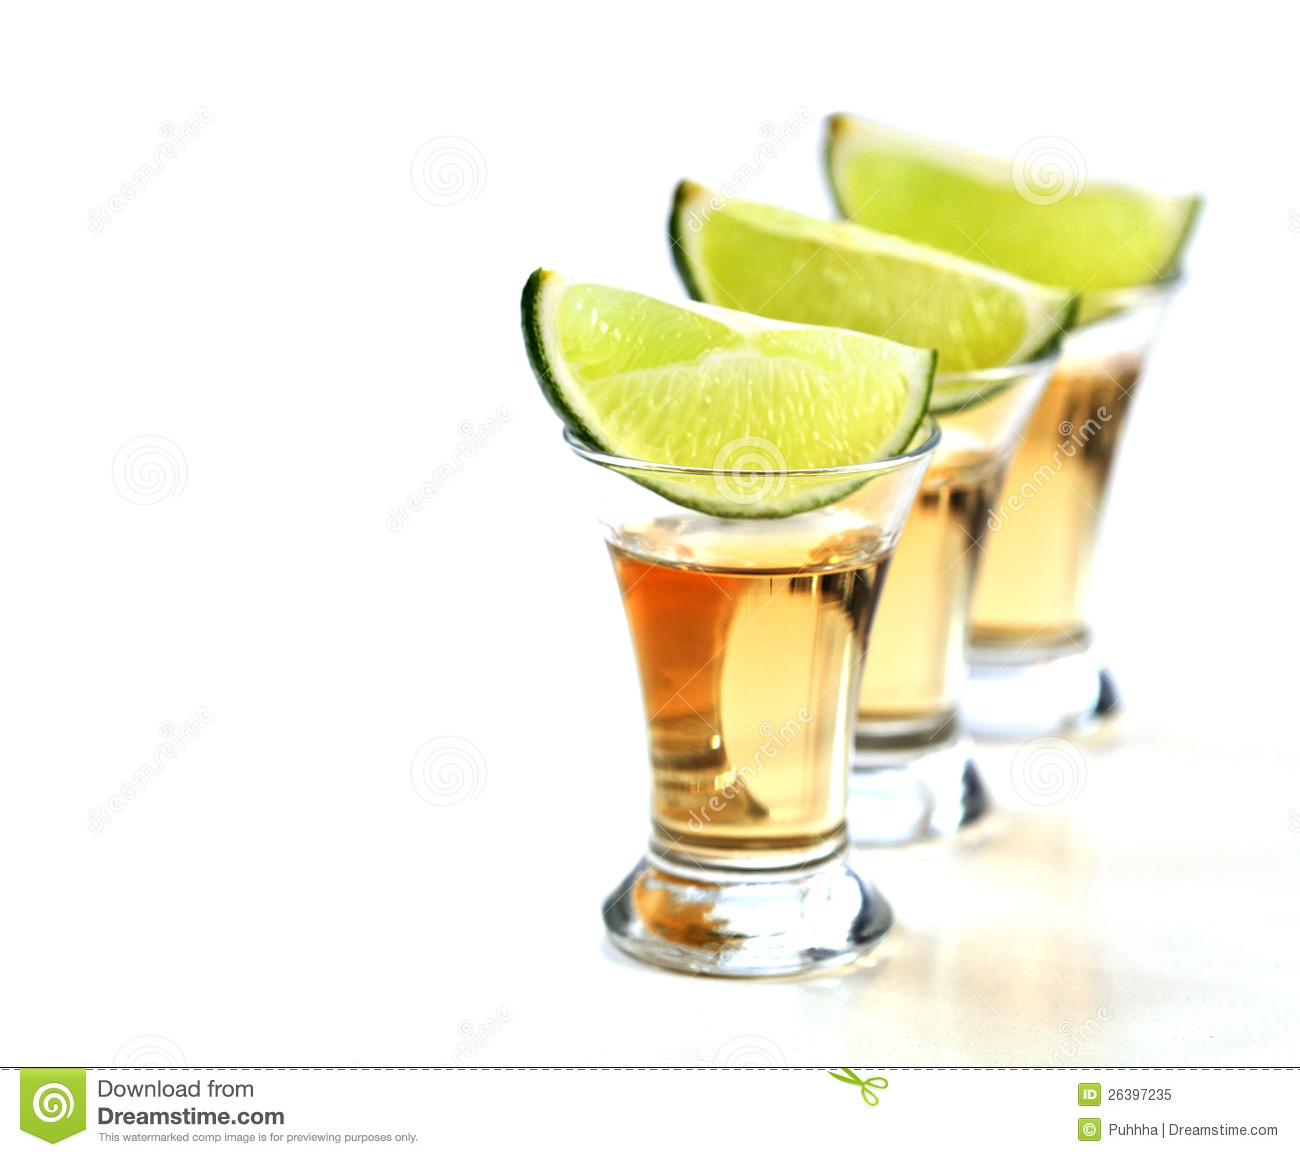 Tequila Shots Royalty Free Stock Photo - Image: 26397235